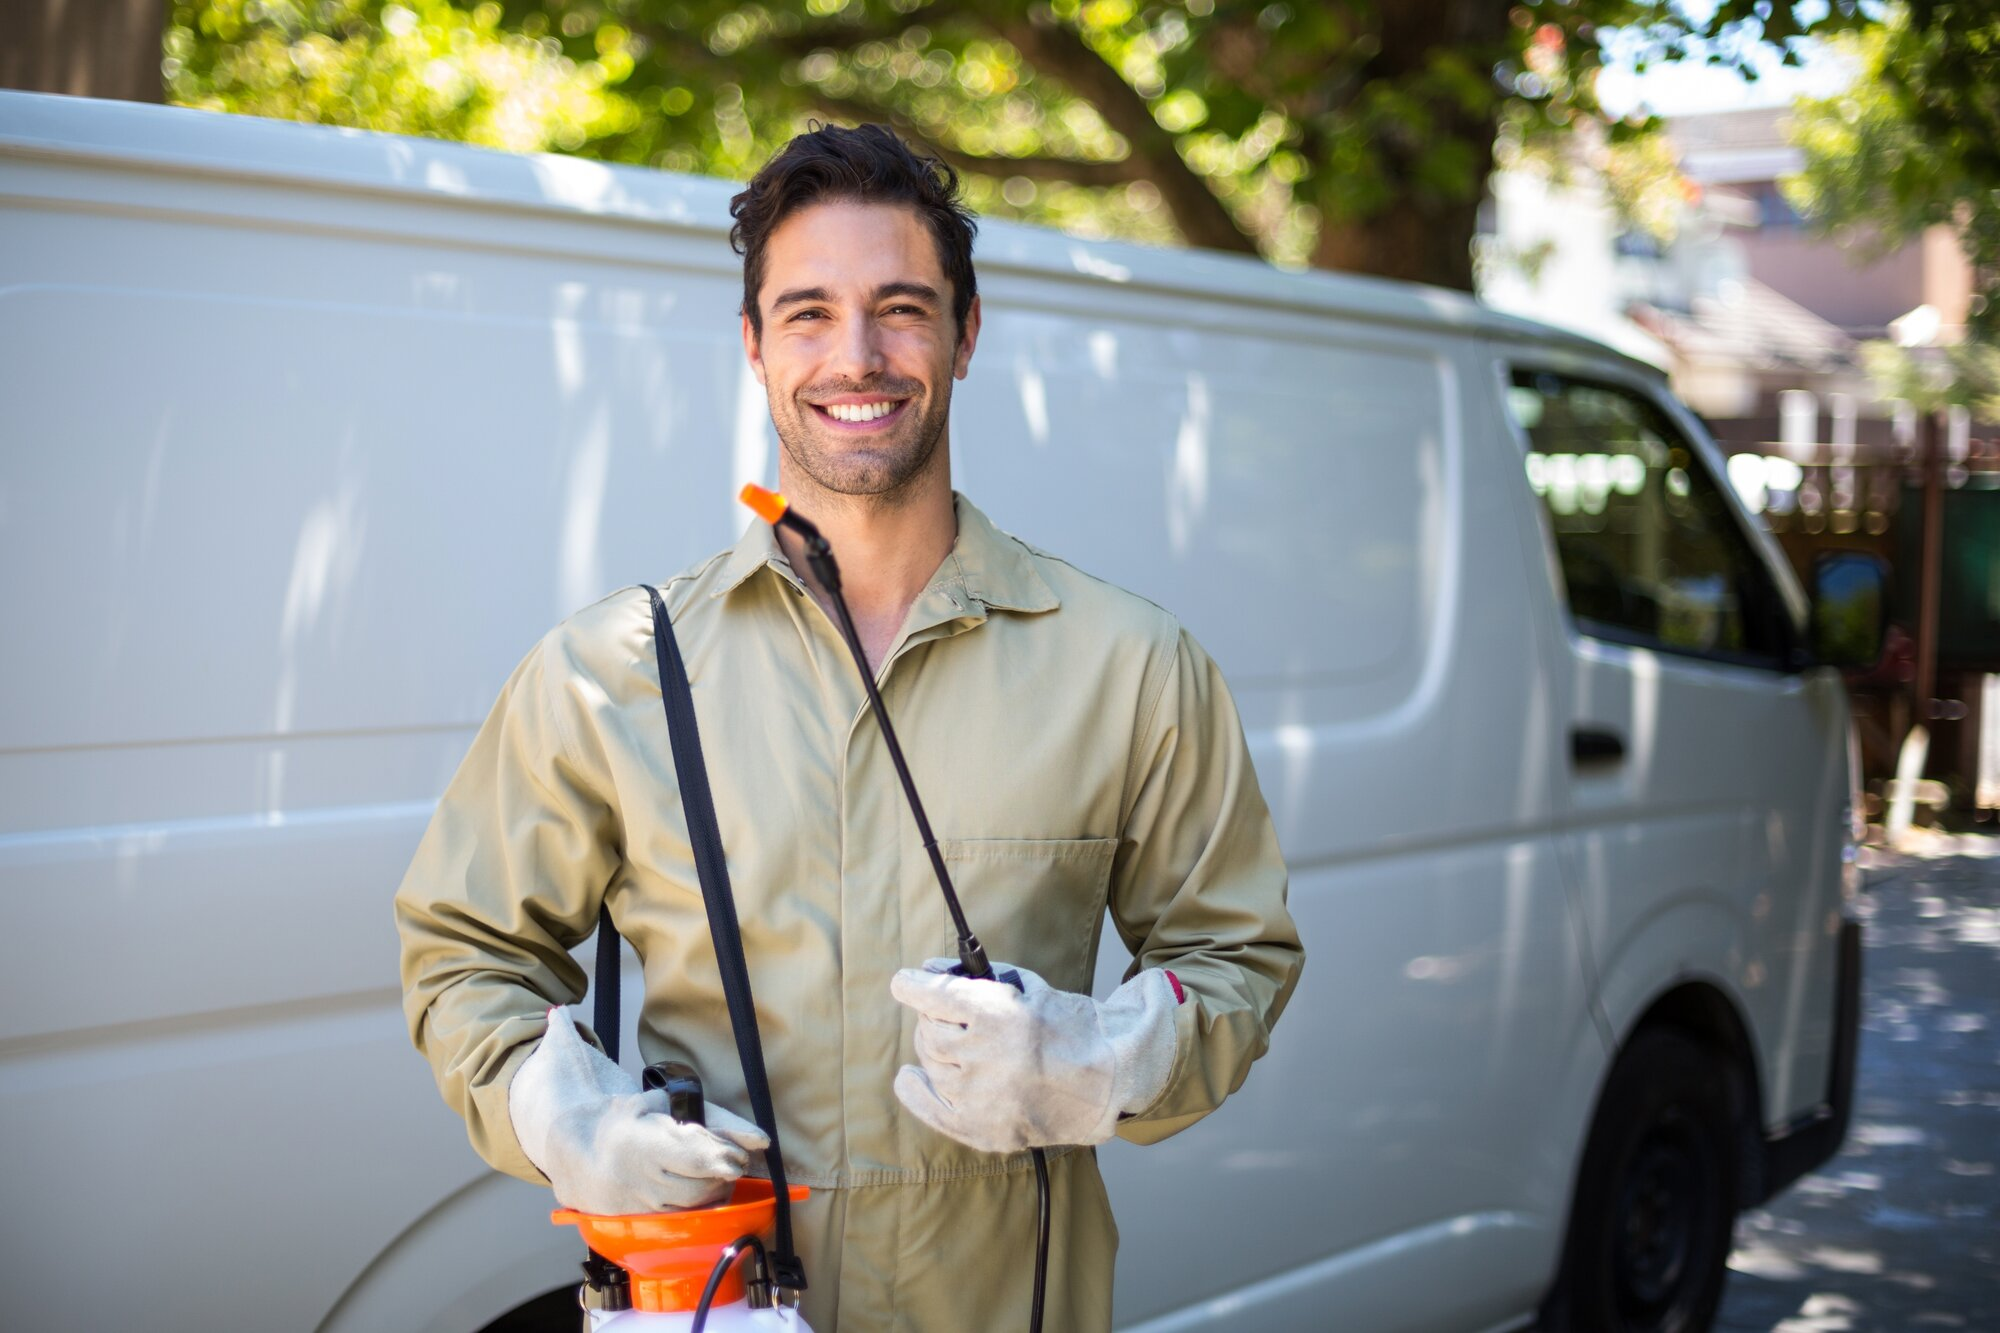 Smiling worker with pesticide sprayer and van on the back